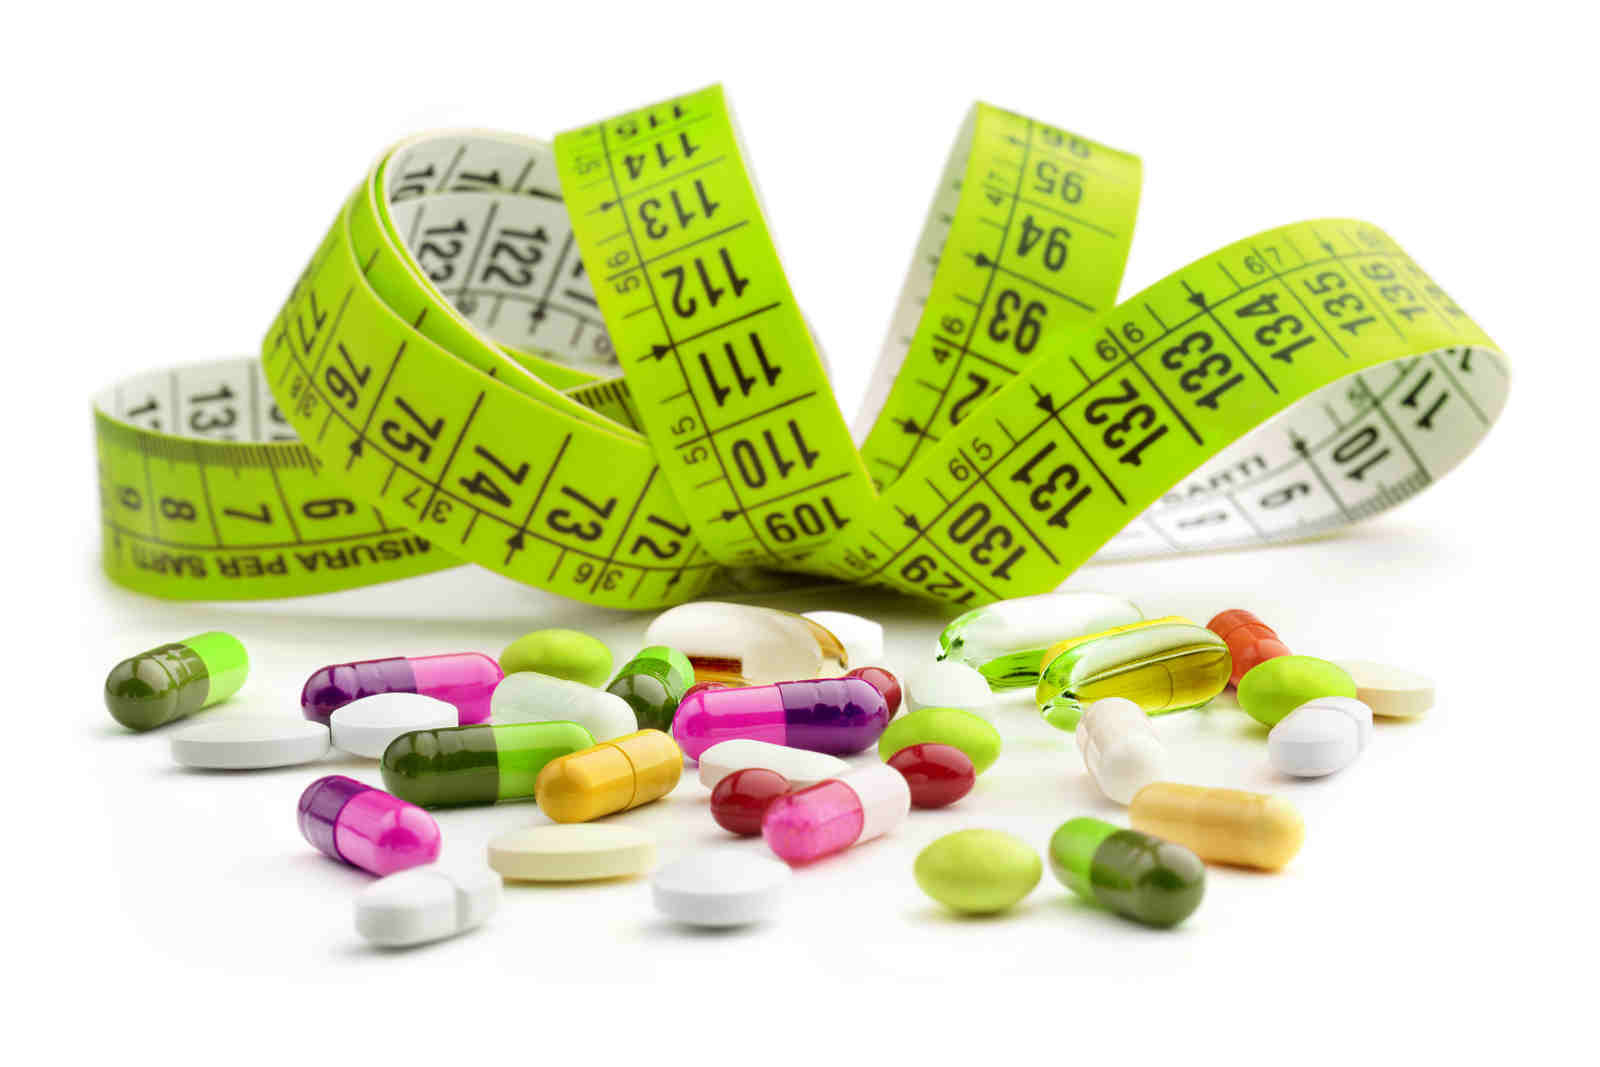 Pharmaceutical Weight Loss